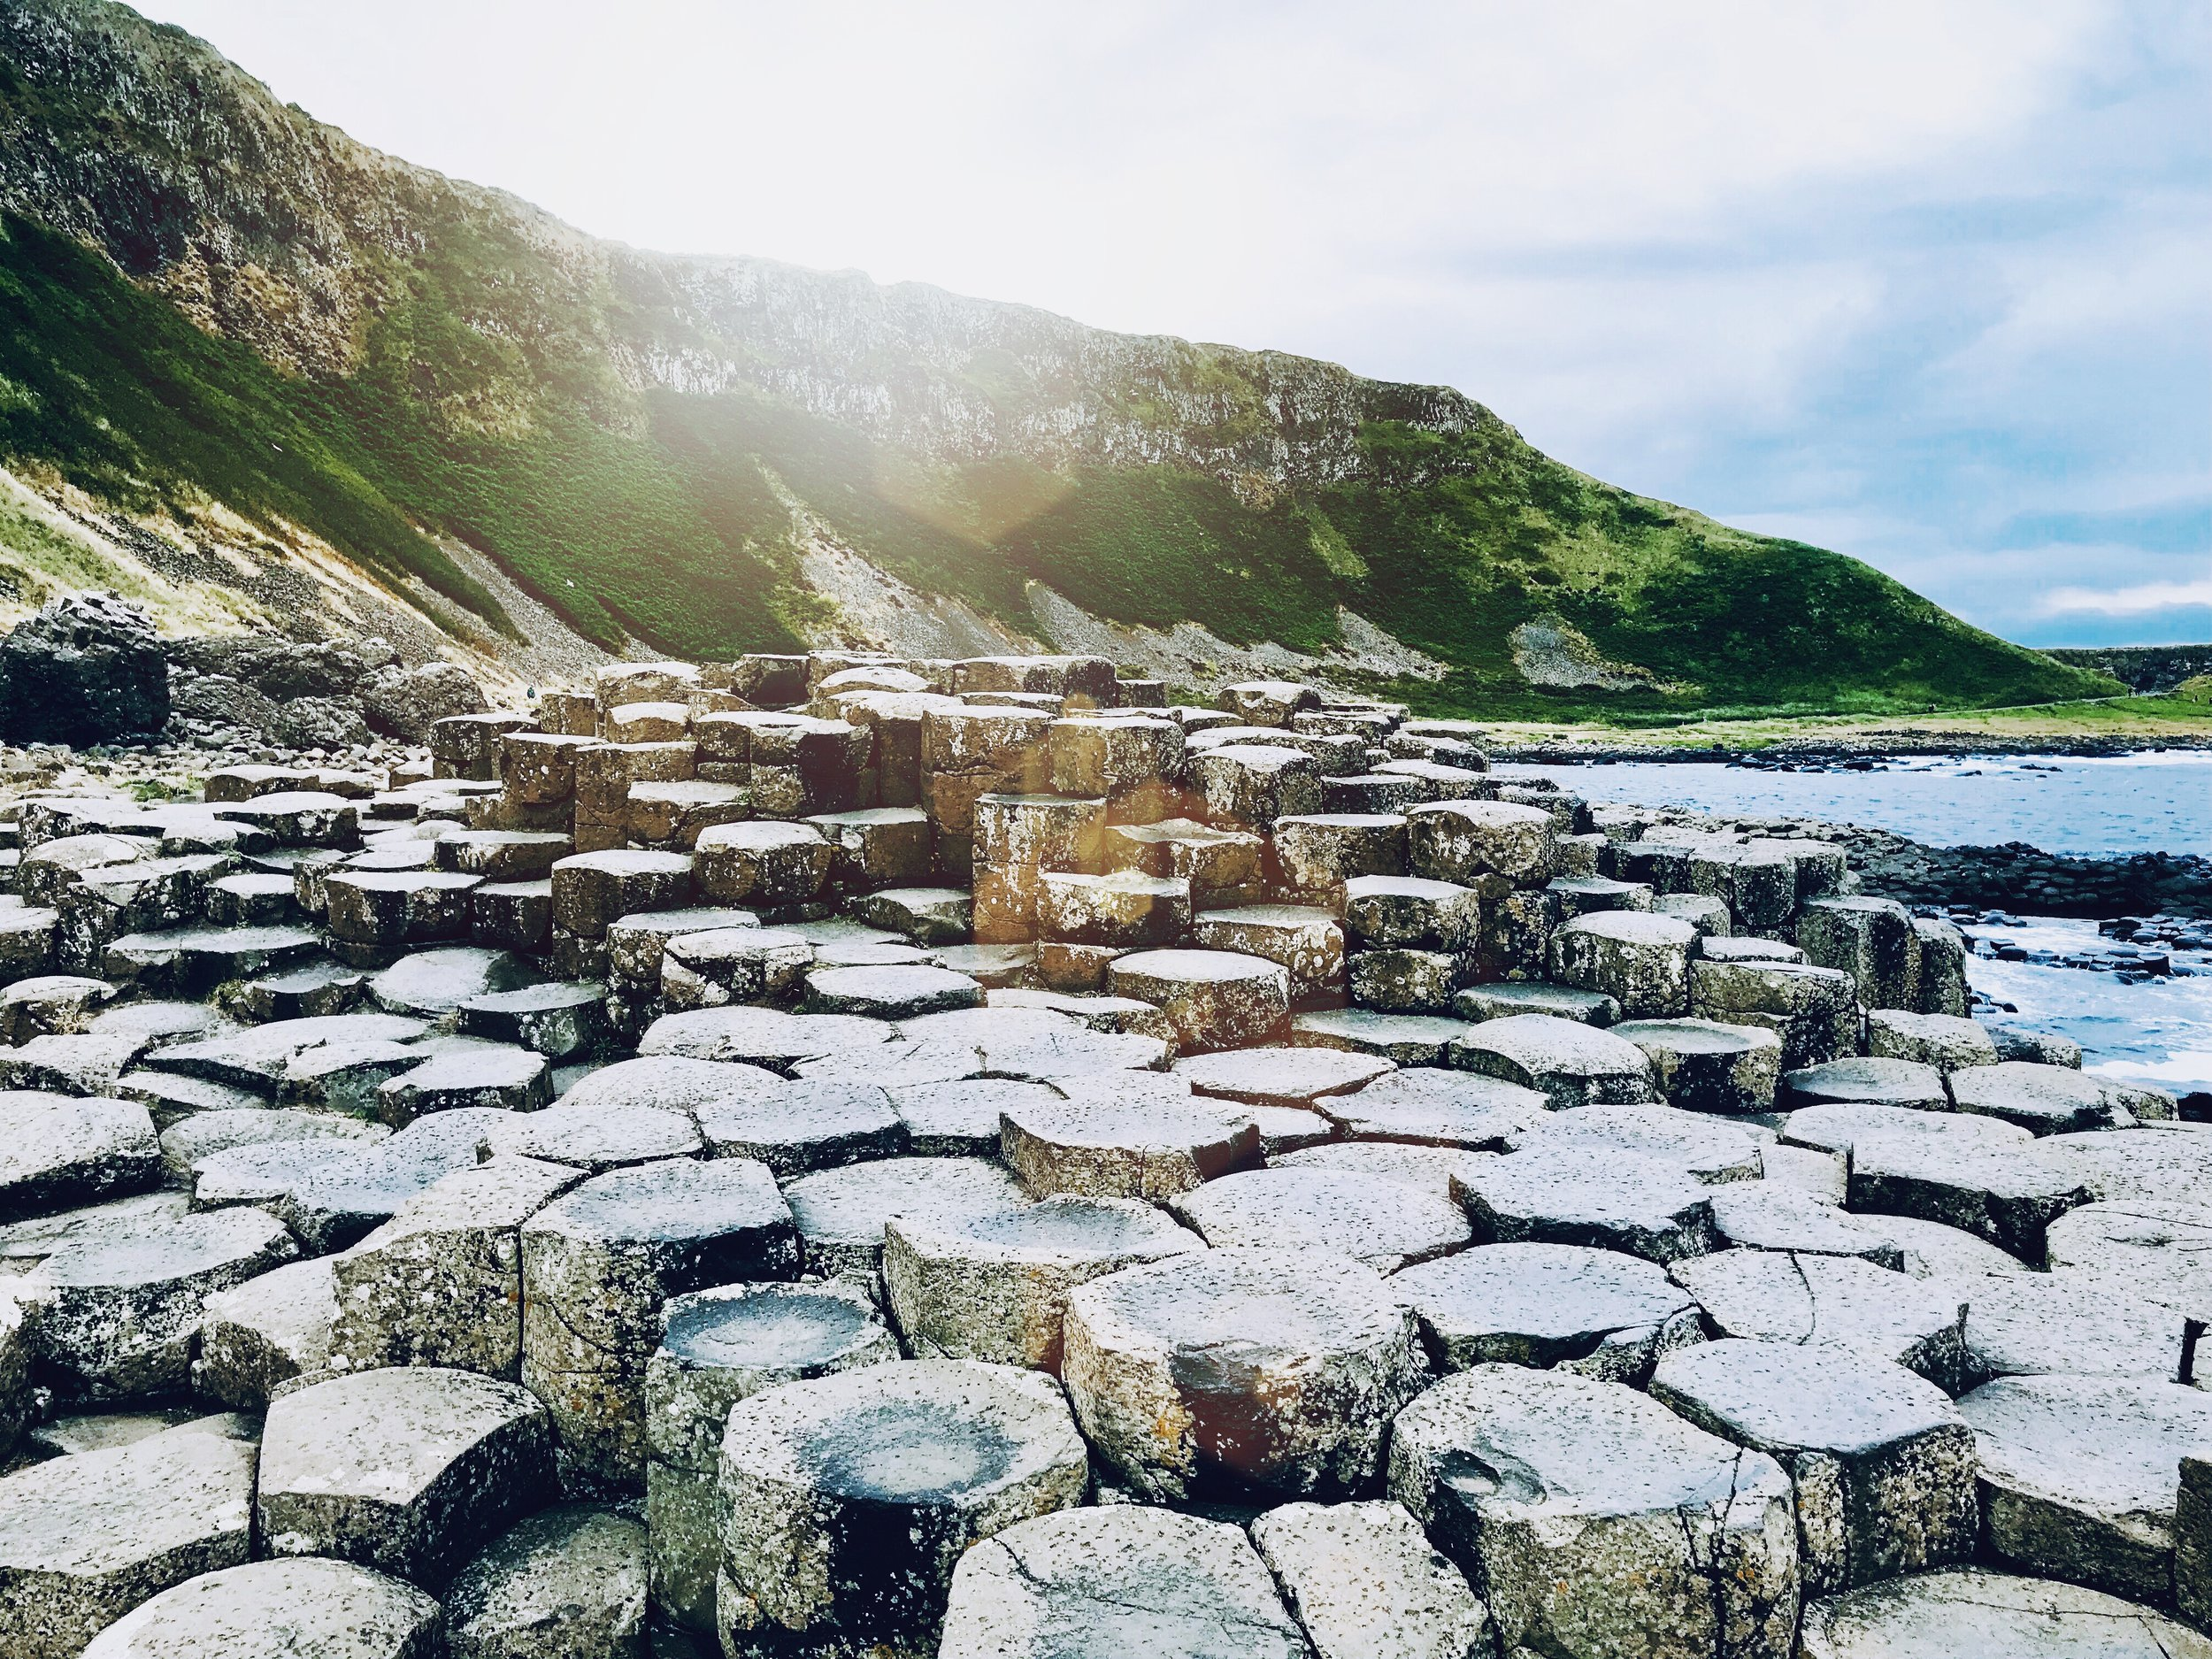 Postcard from the Giant's Causeway